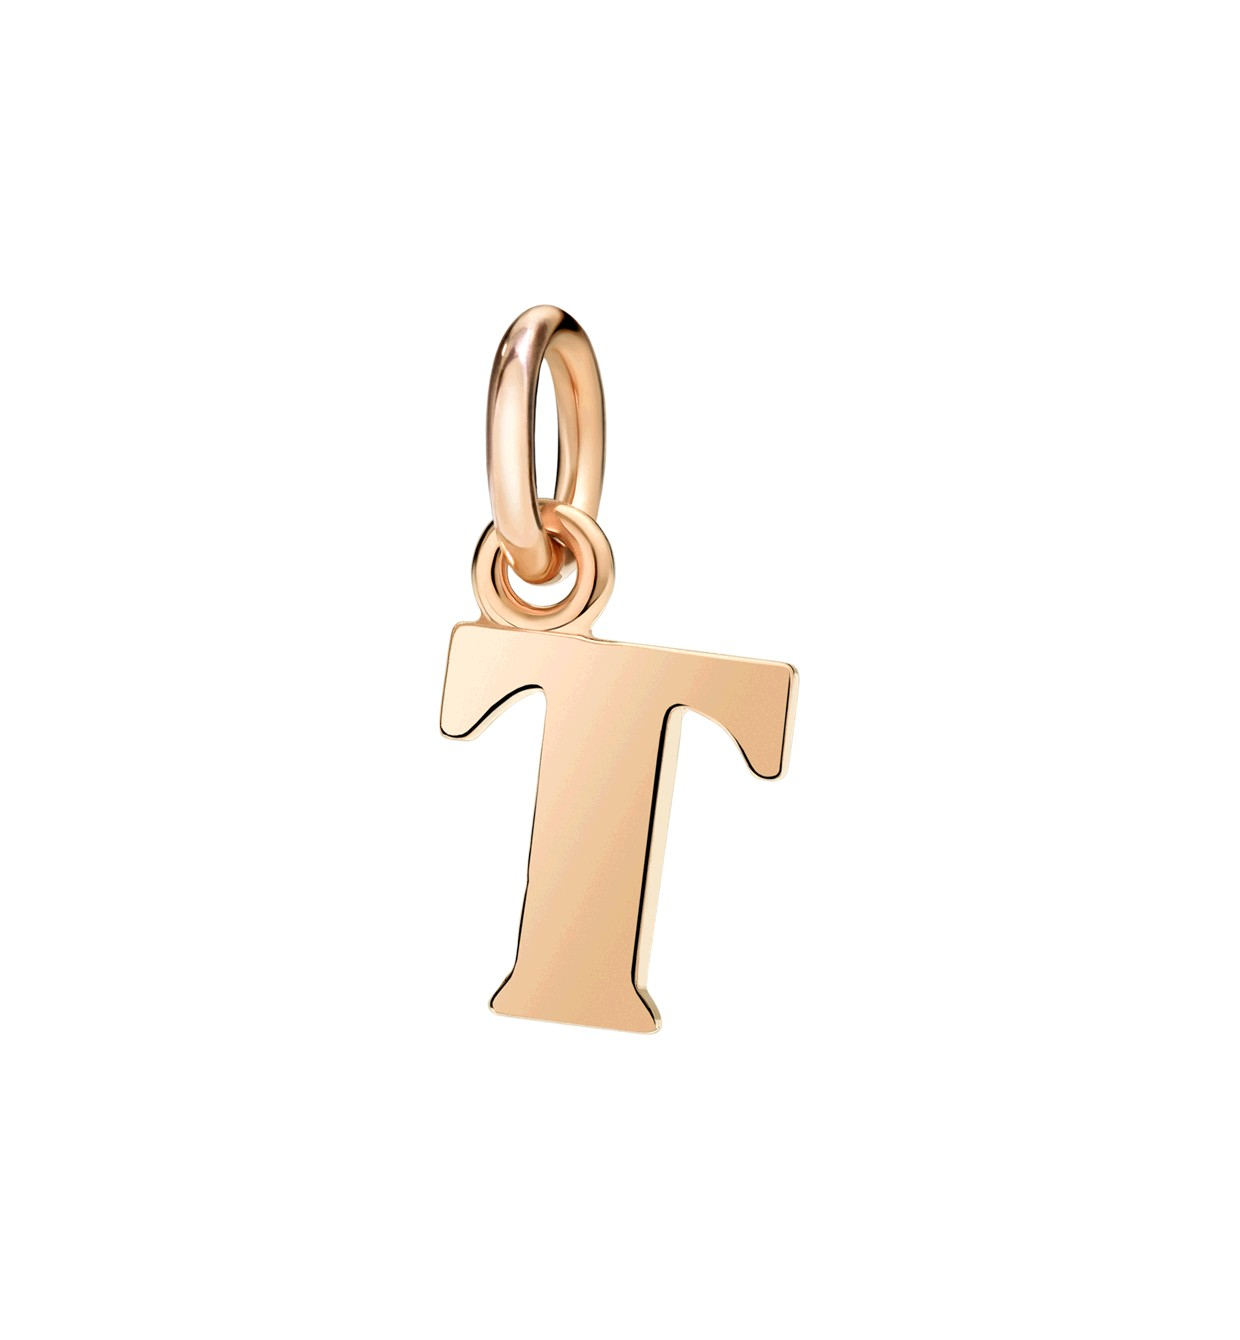 Charm Buchstabe T 9ct Roségold - Dodo - DLET9/T